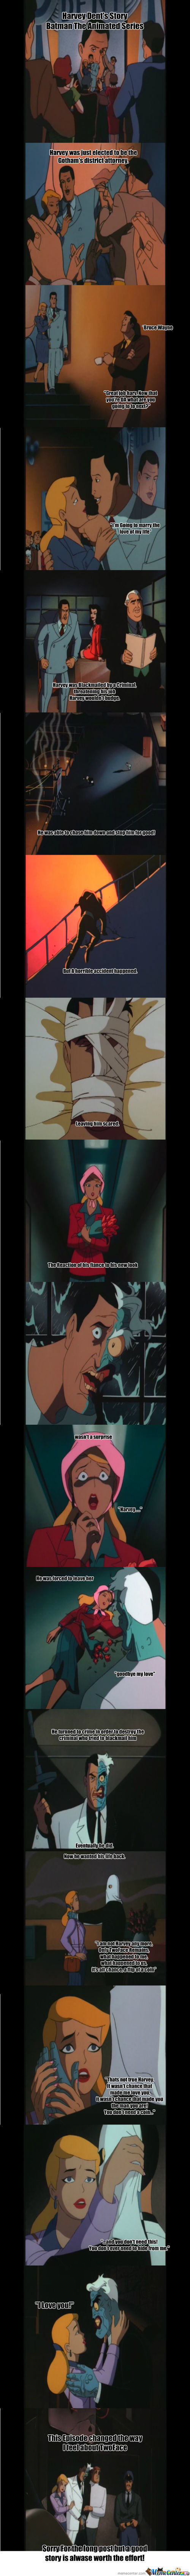 The Story Of Twoface (From Batman The Animated Series)